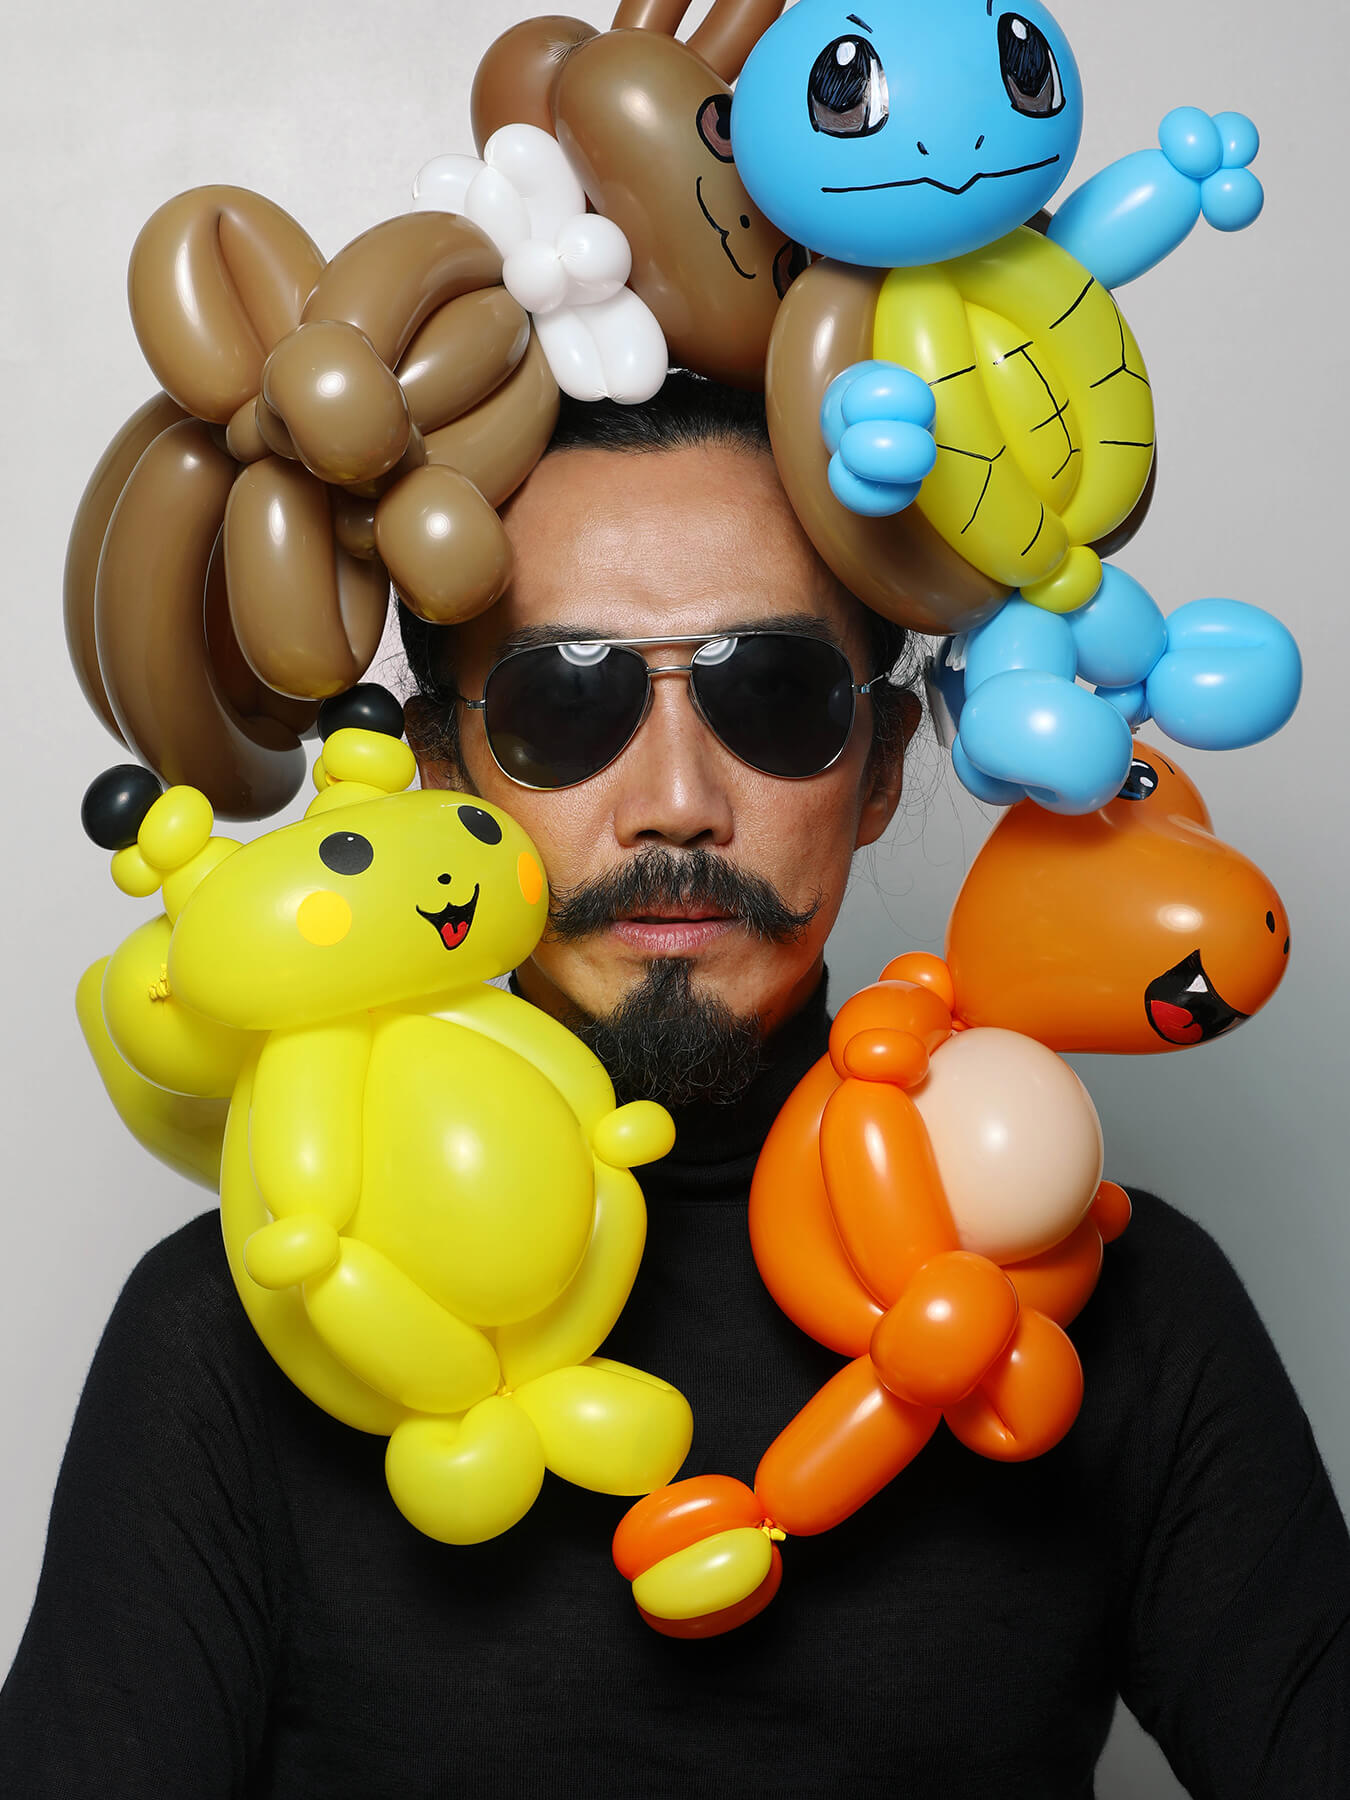 11 Oct 2017 Pokemon: Derong is photographed with Pokemon twist balloons